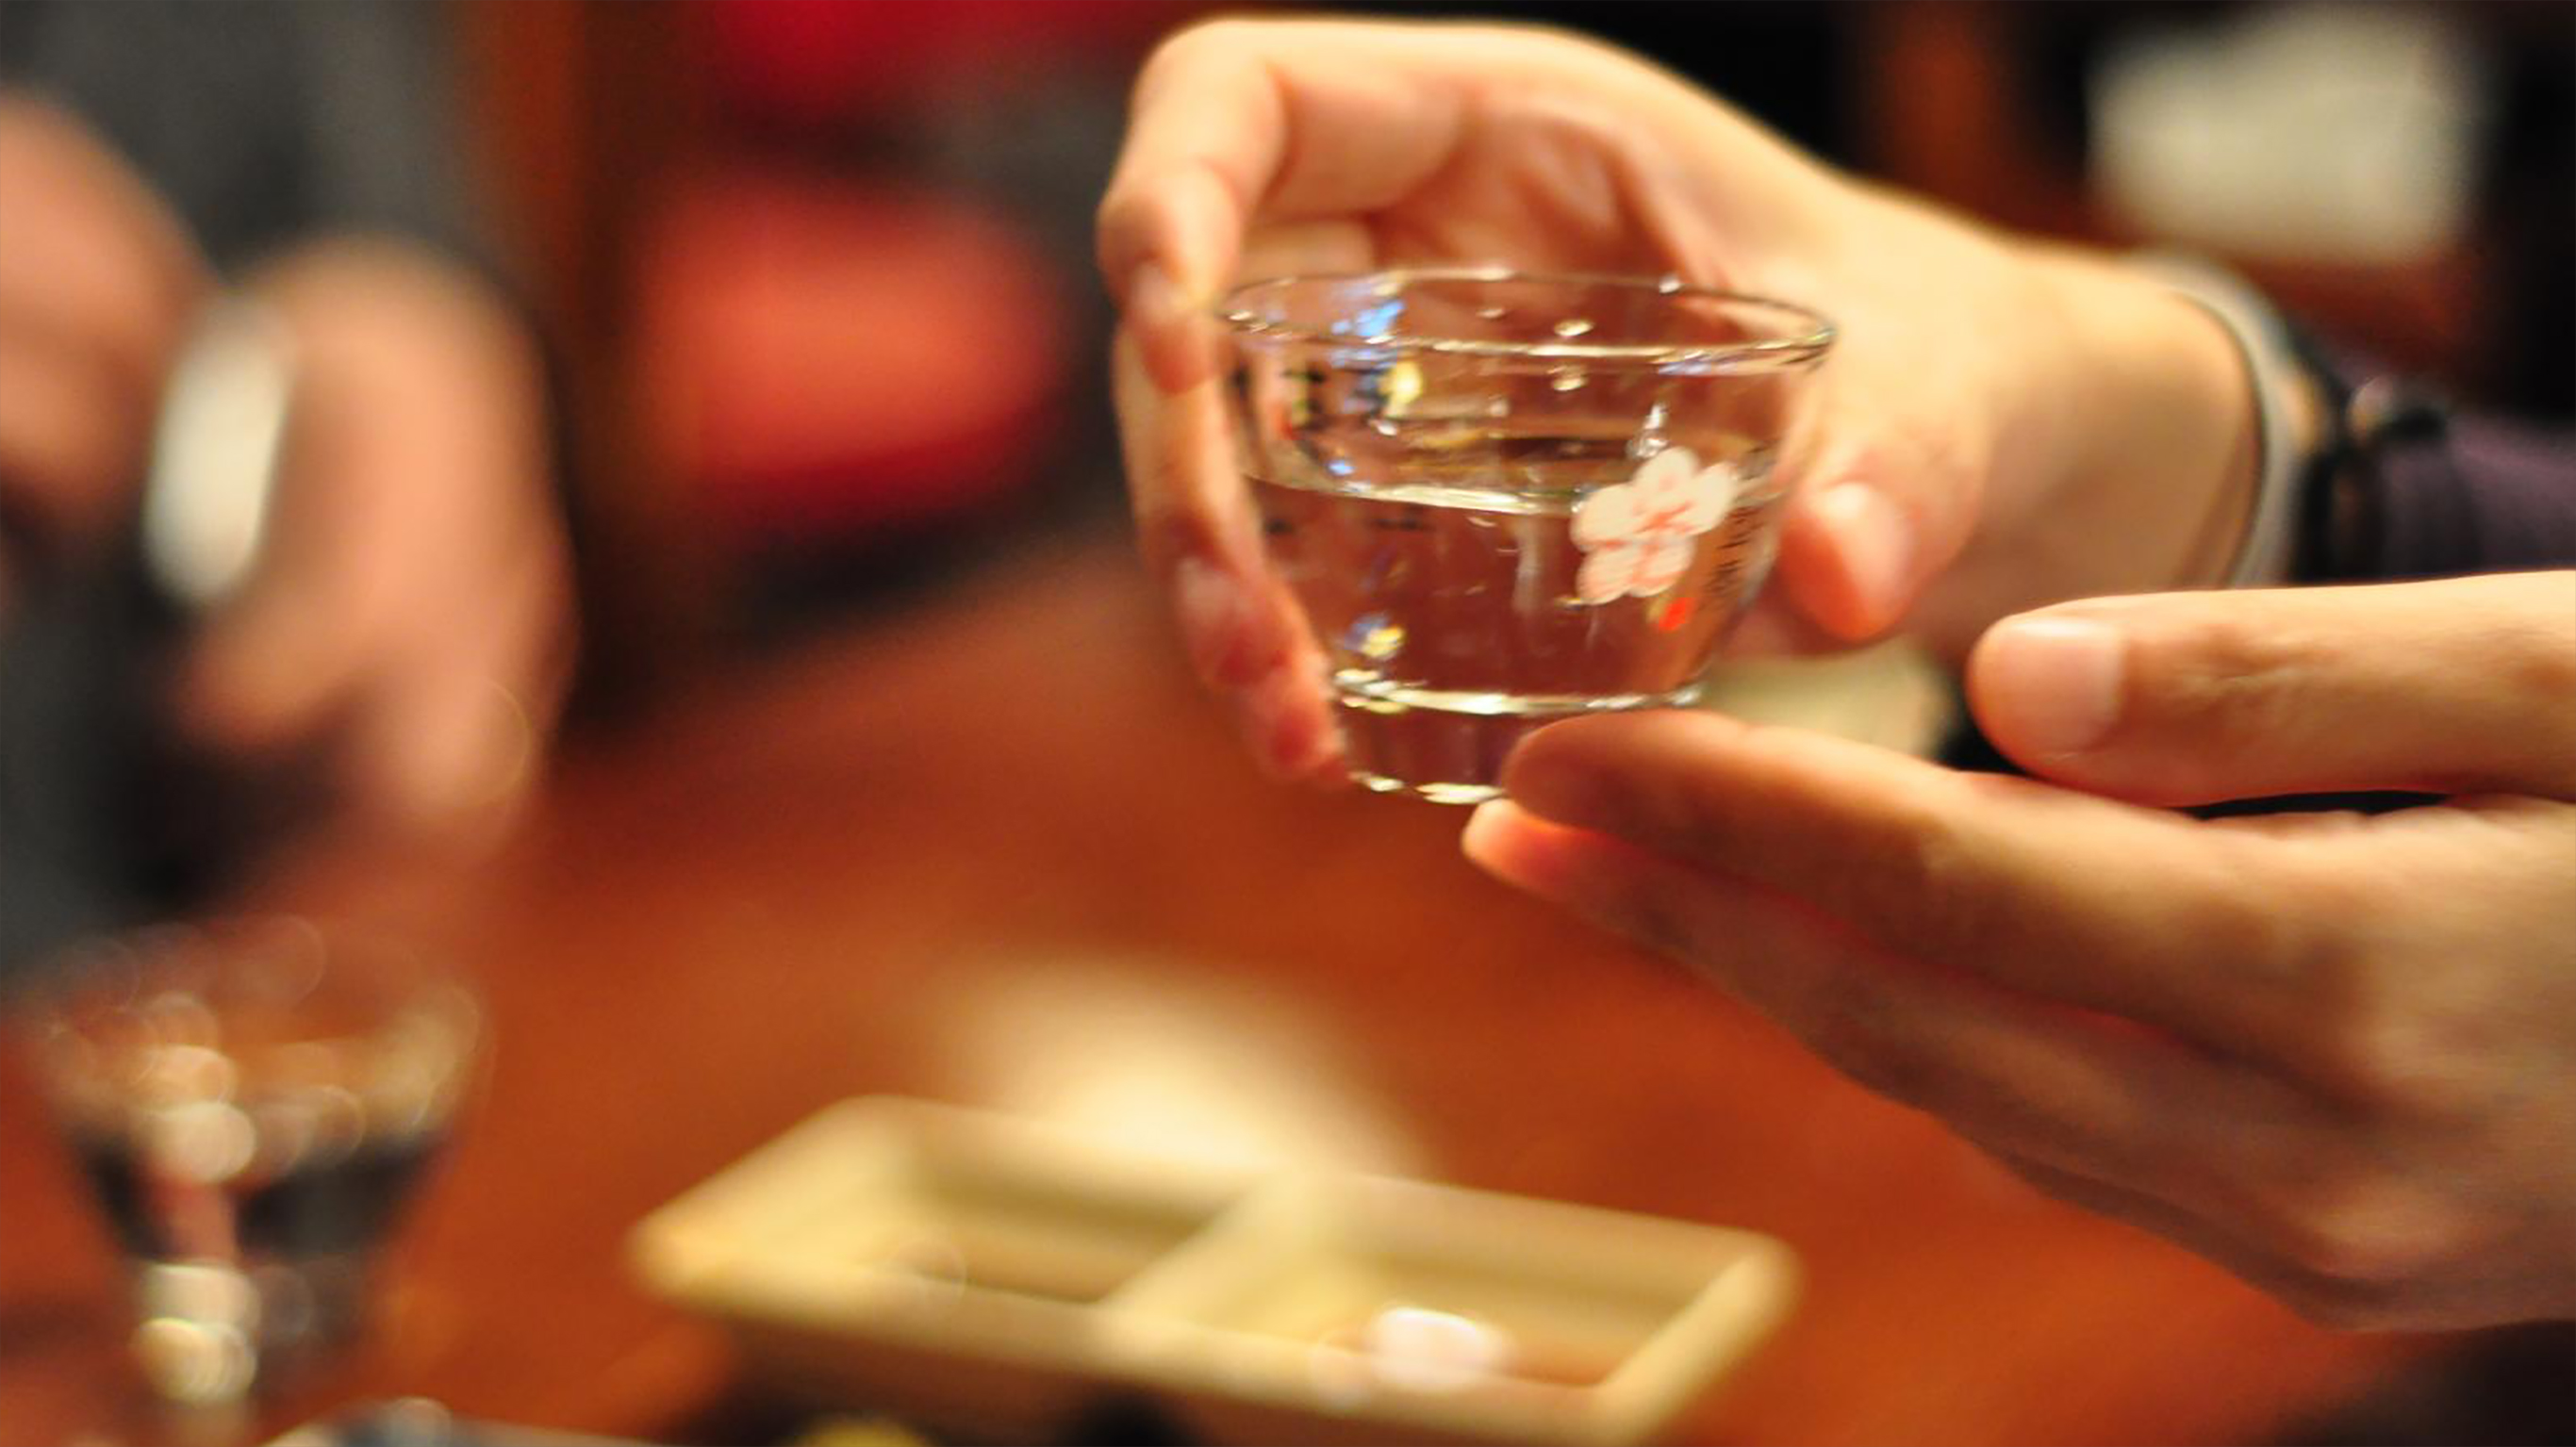 Koreans pour alcohol using two hands.